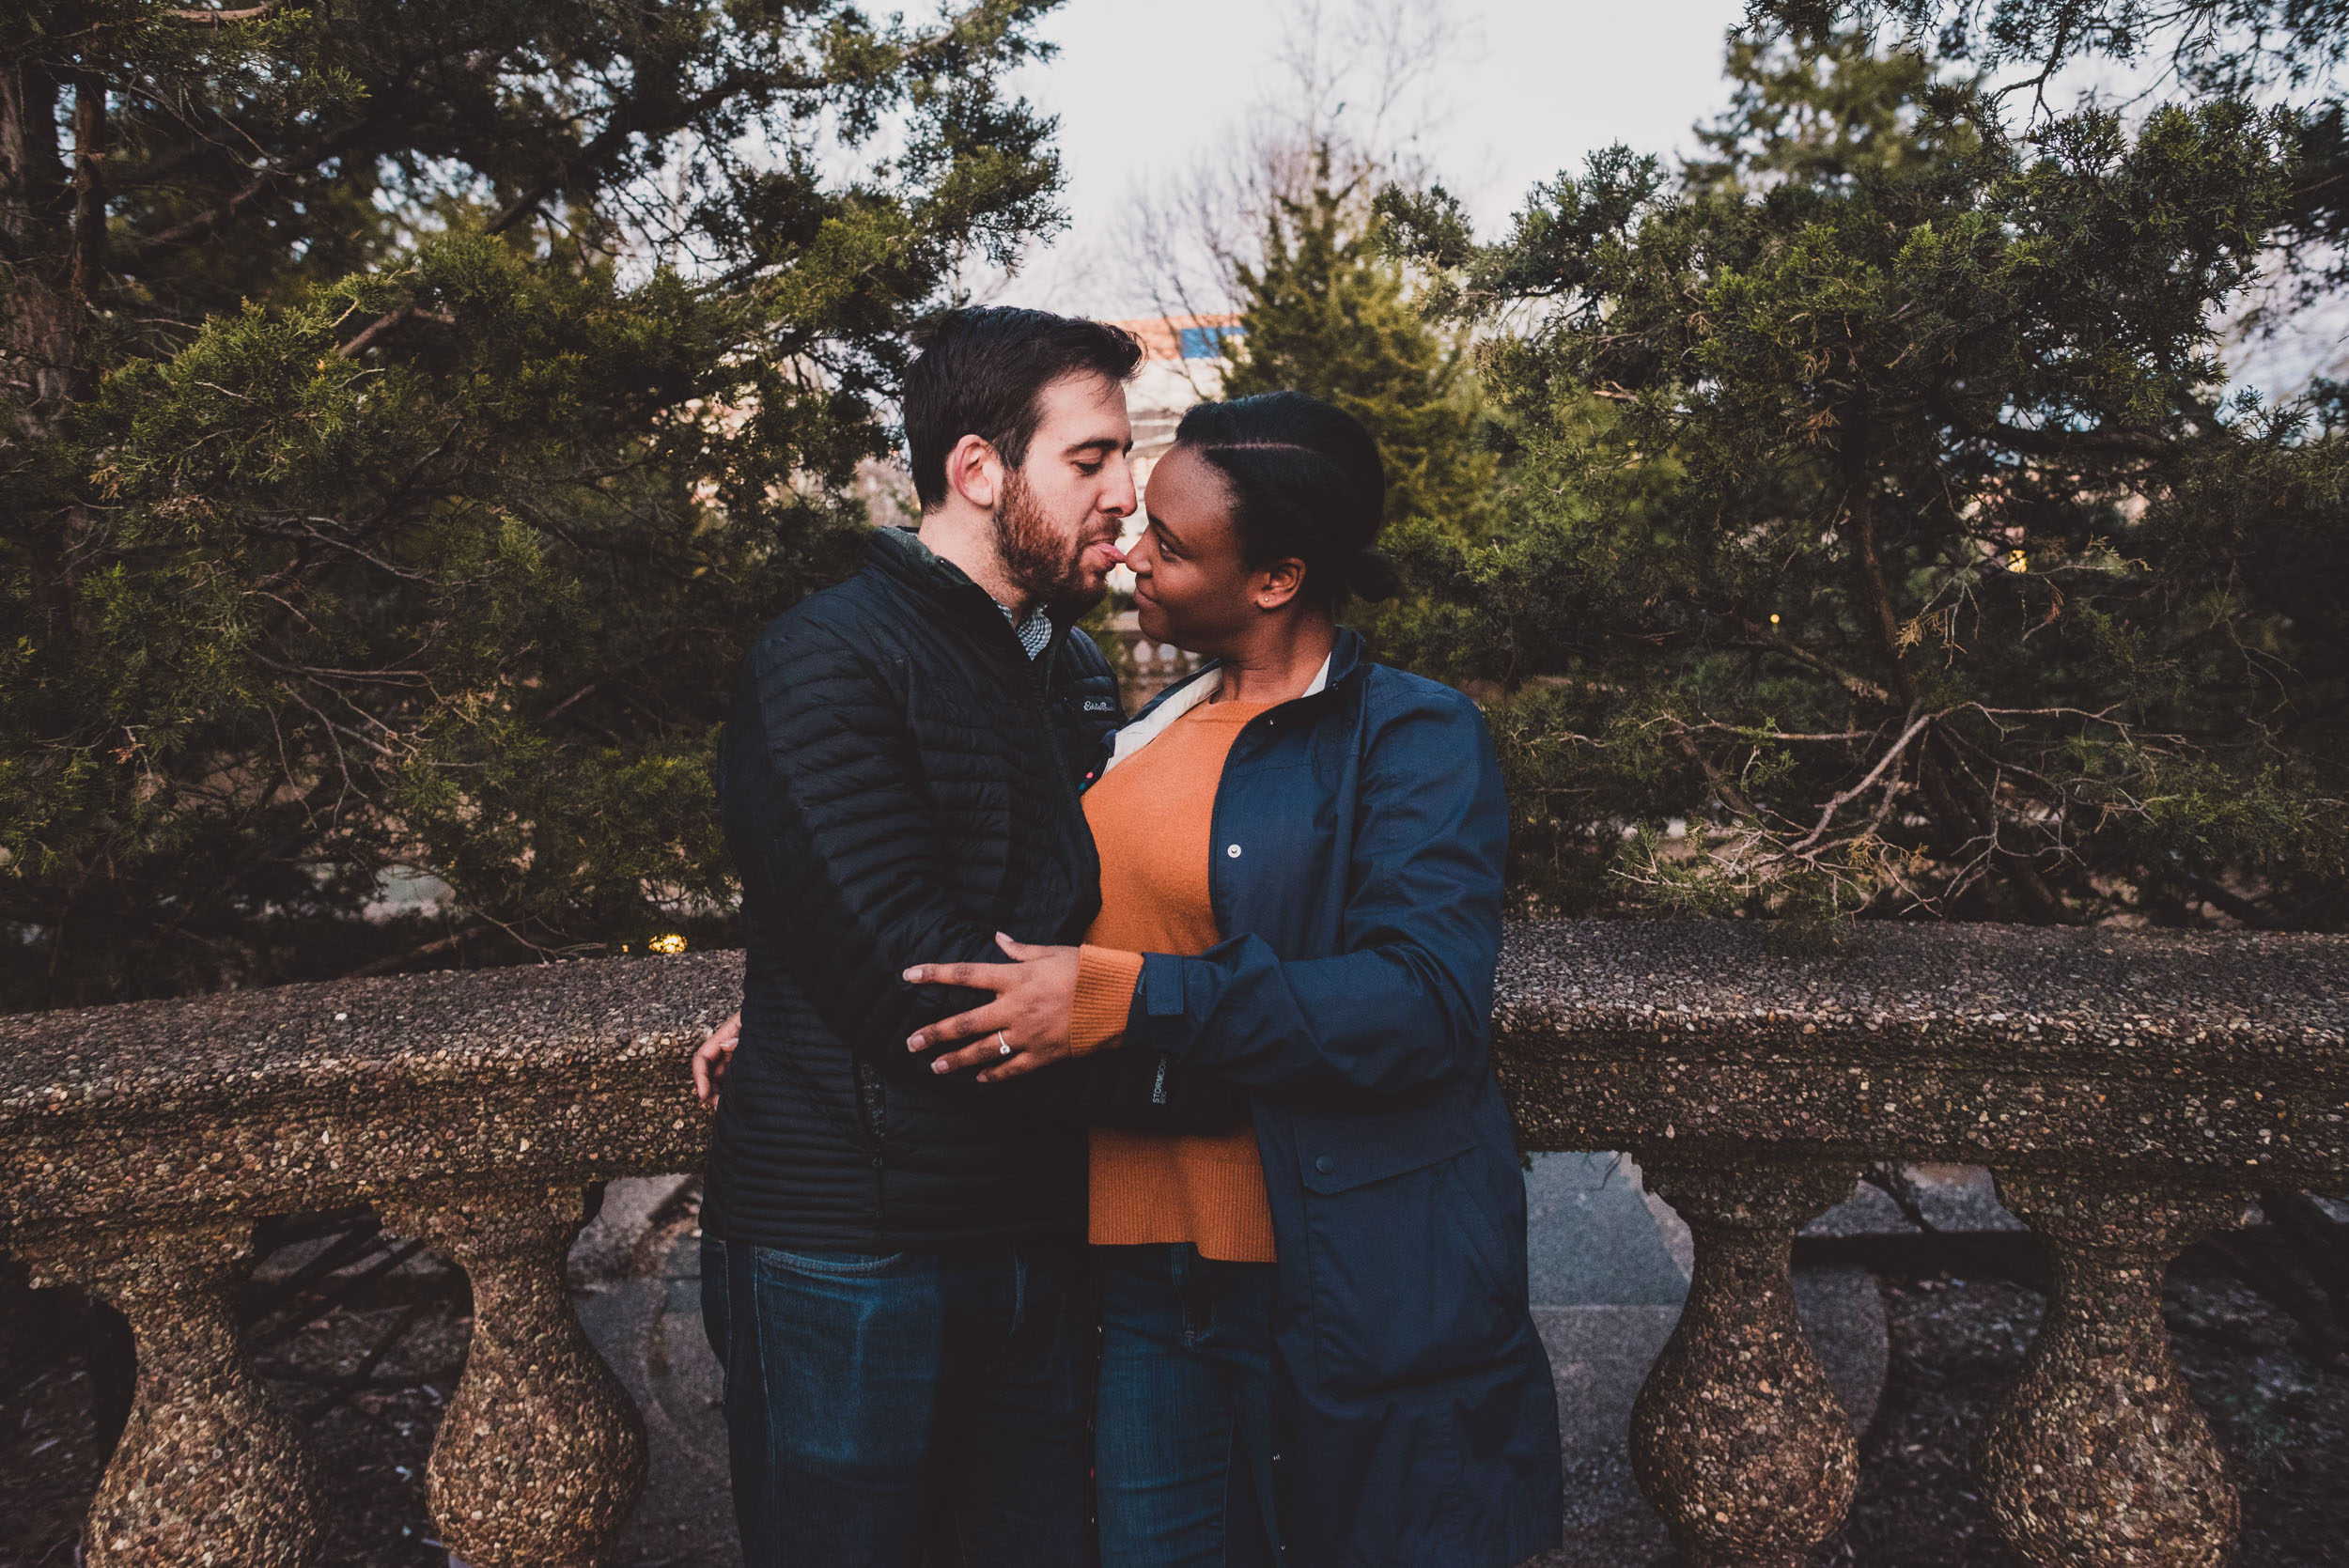 meridian-hill-park-engagement-30.jpg